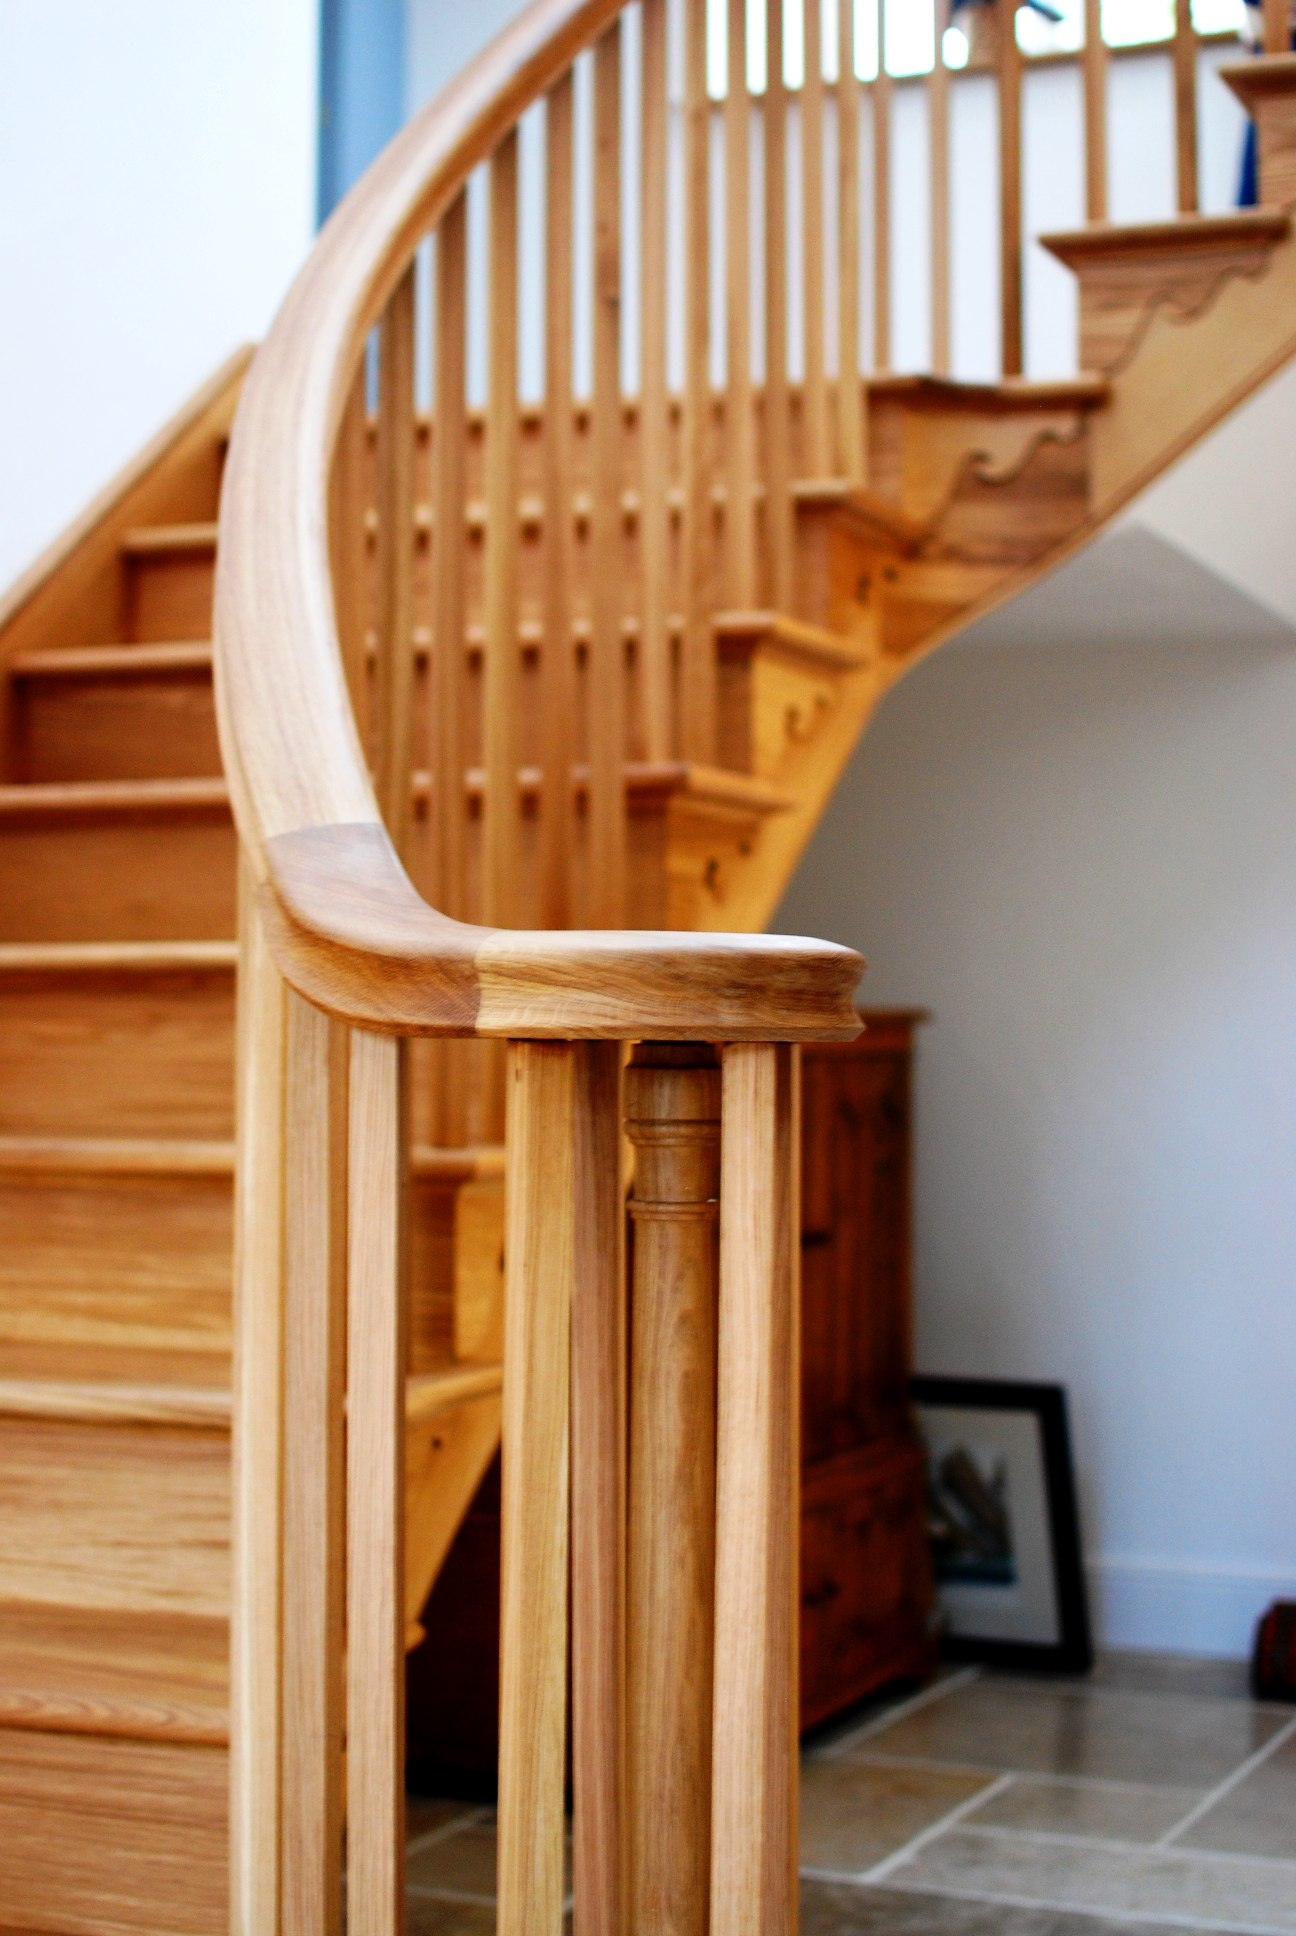 Oak staircase detail